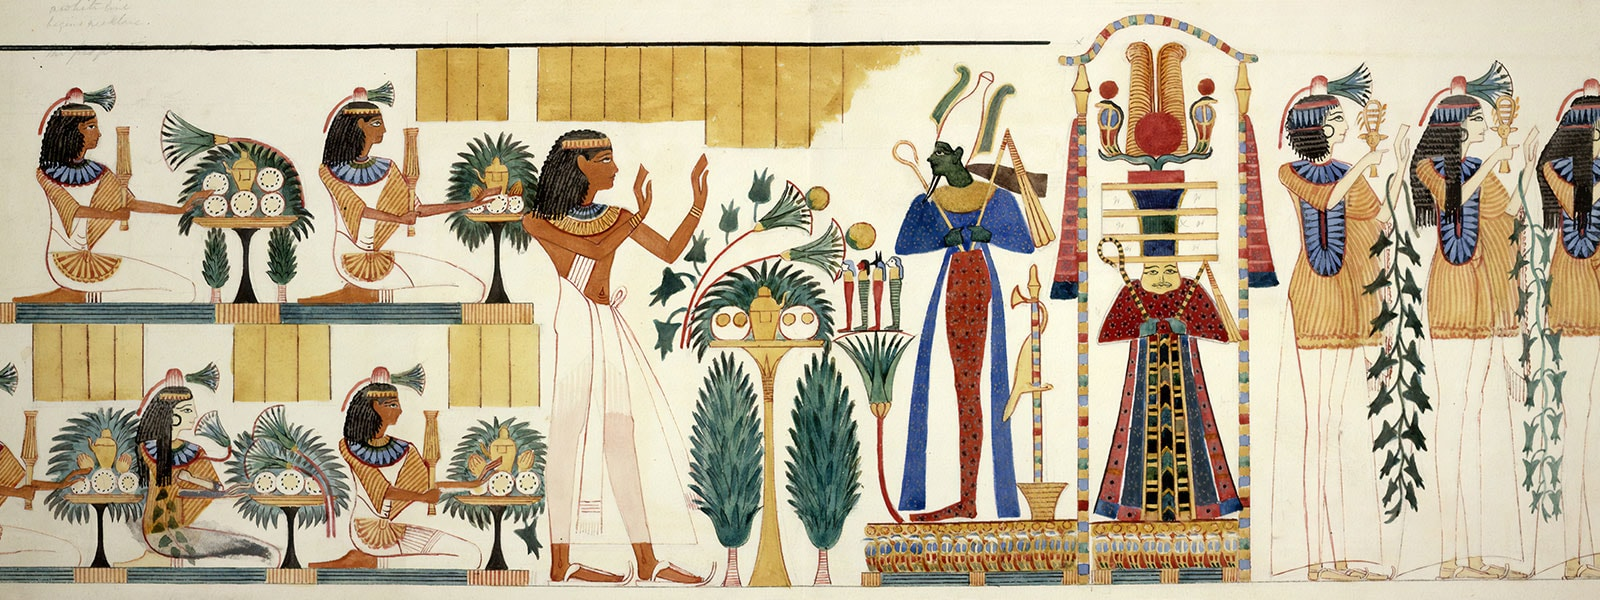 egyptians-and-essential-oils